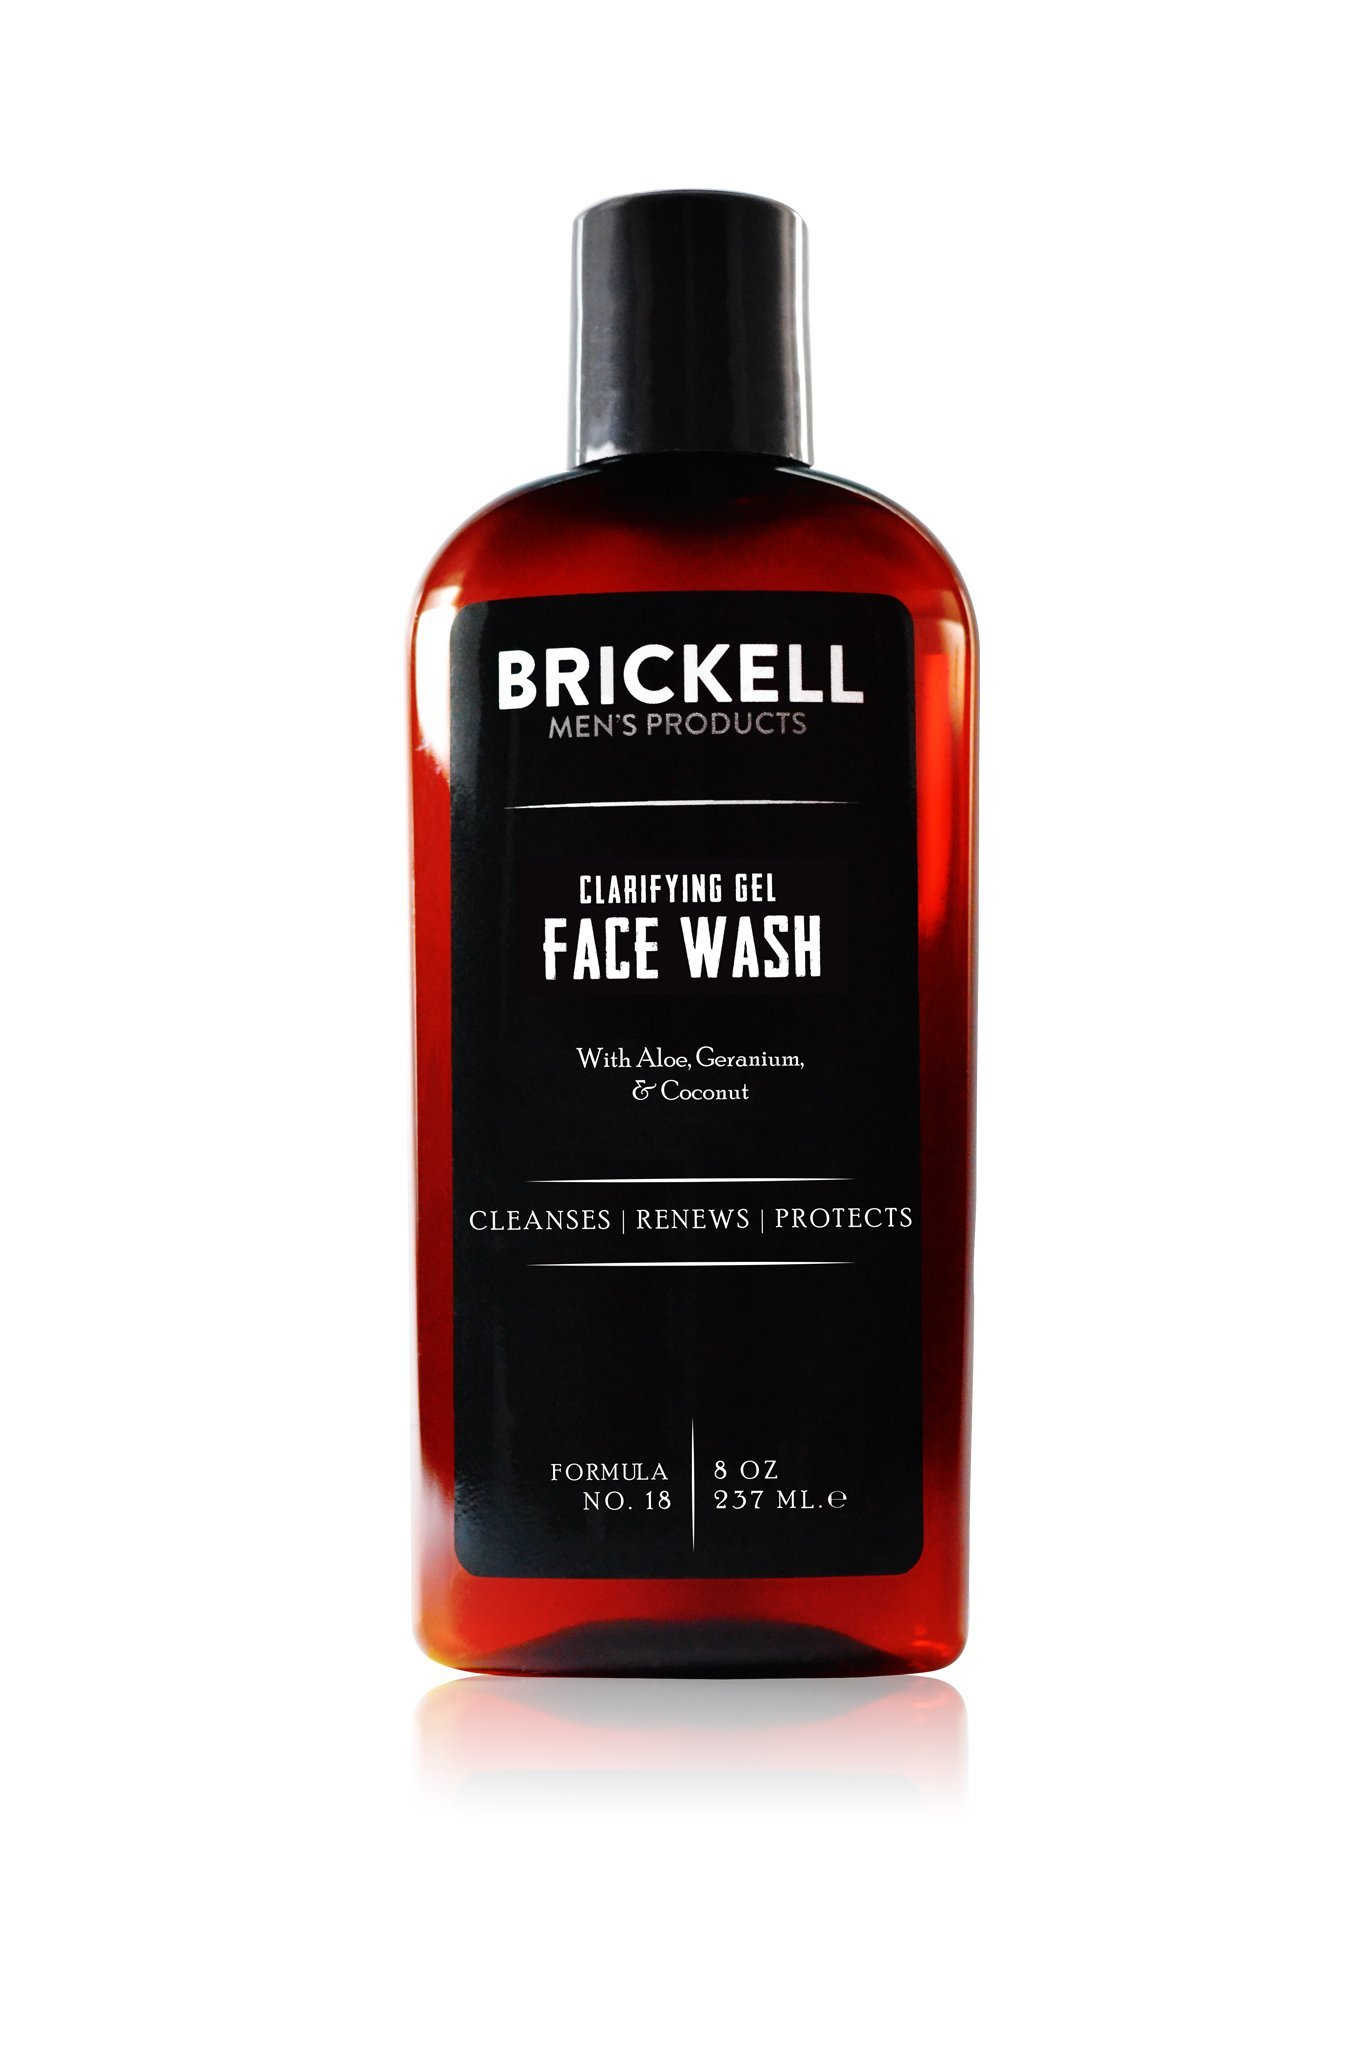 Brickell Men's Clarifying Gel Face Wash for Men, Natural and Organic Rich Foaming Daily Facial Cleanser Formulated With Geranium, Coconut and Aloe, 8 Ounce, Scented by Brickell Men's Products